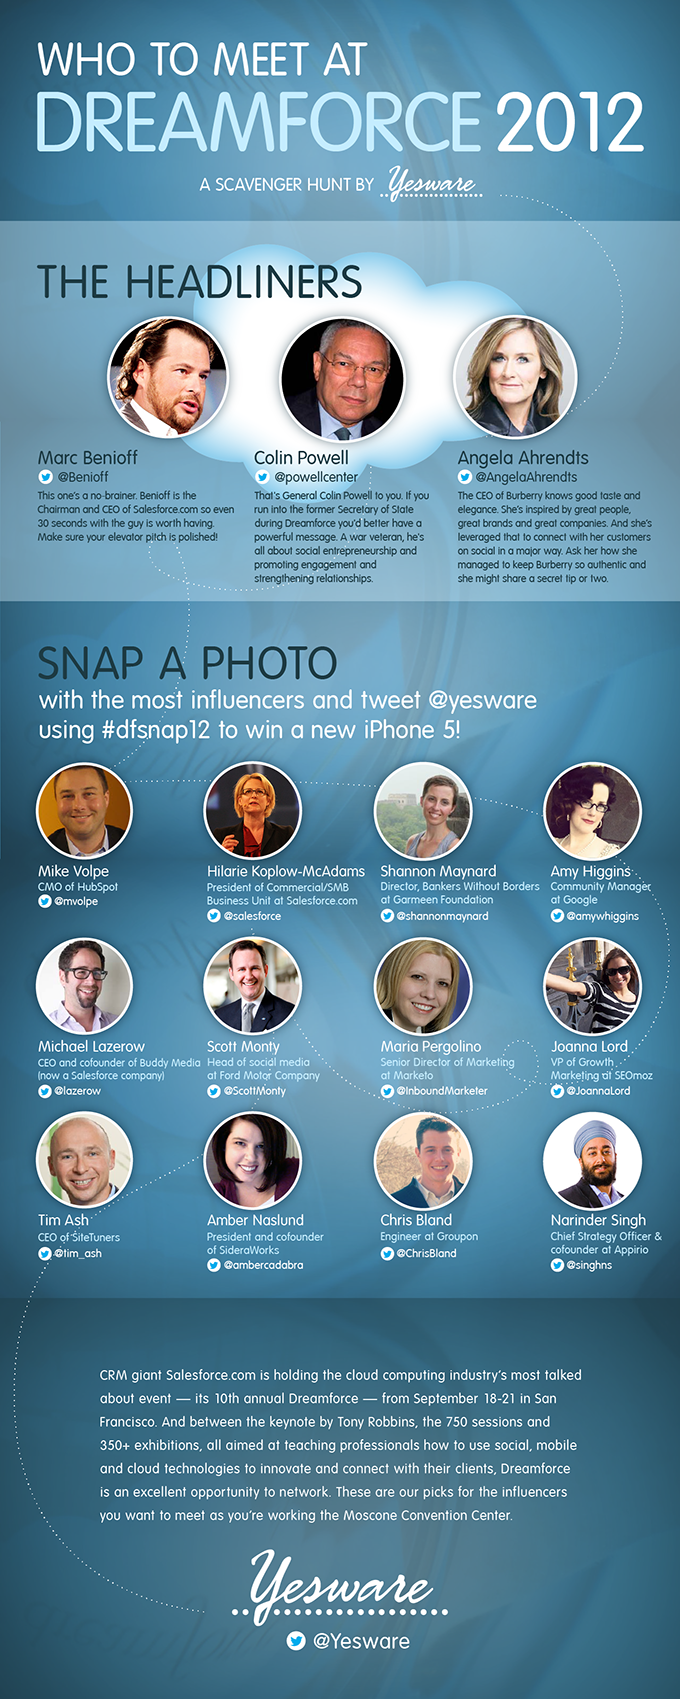 Who To Meet at Dreamforce 2012